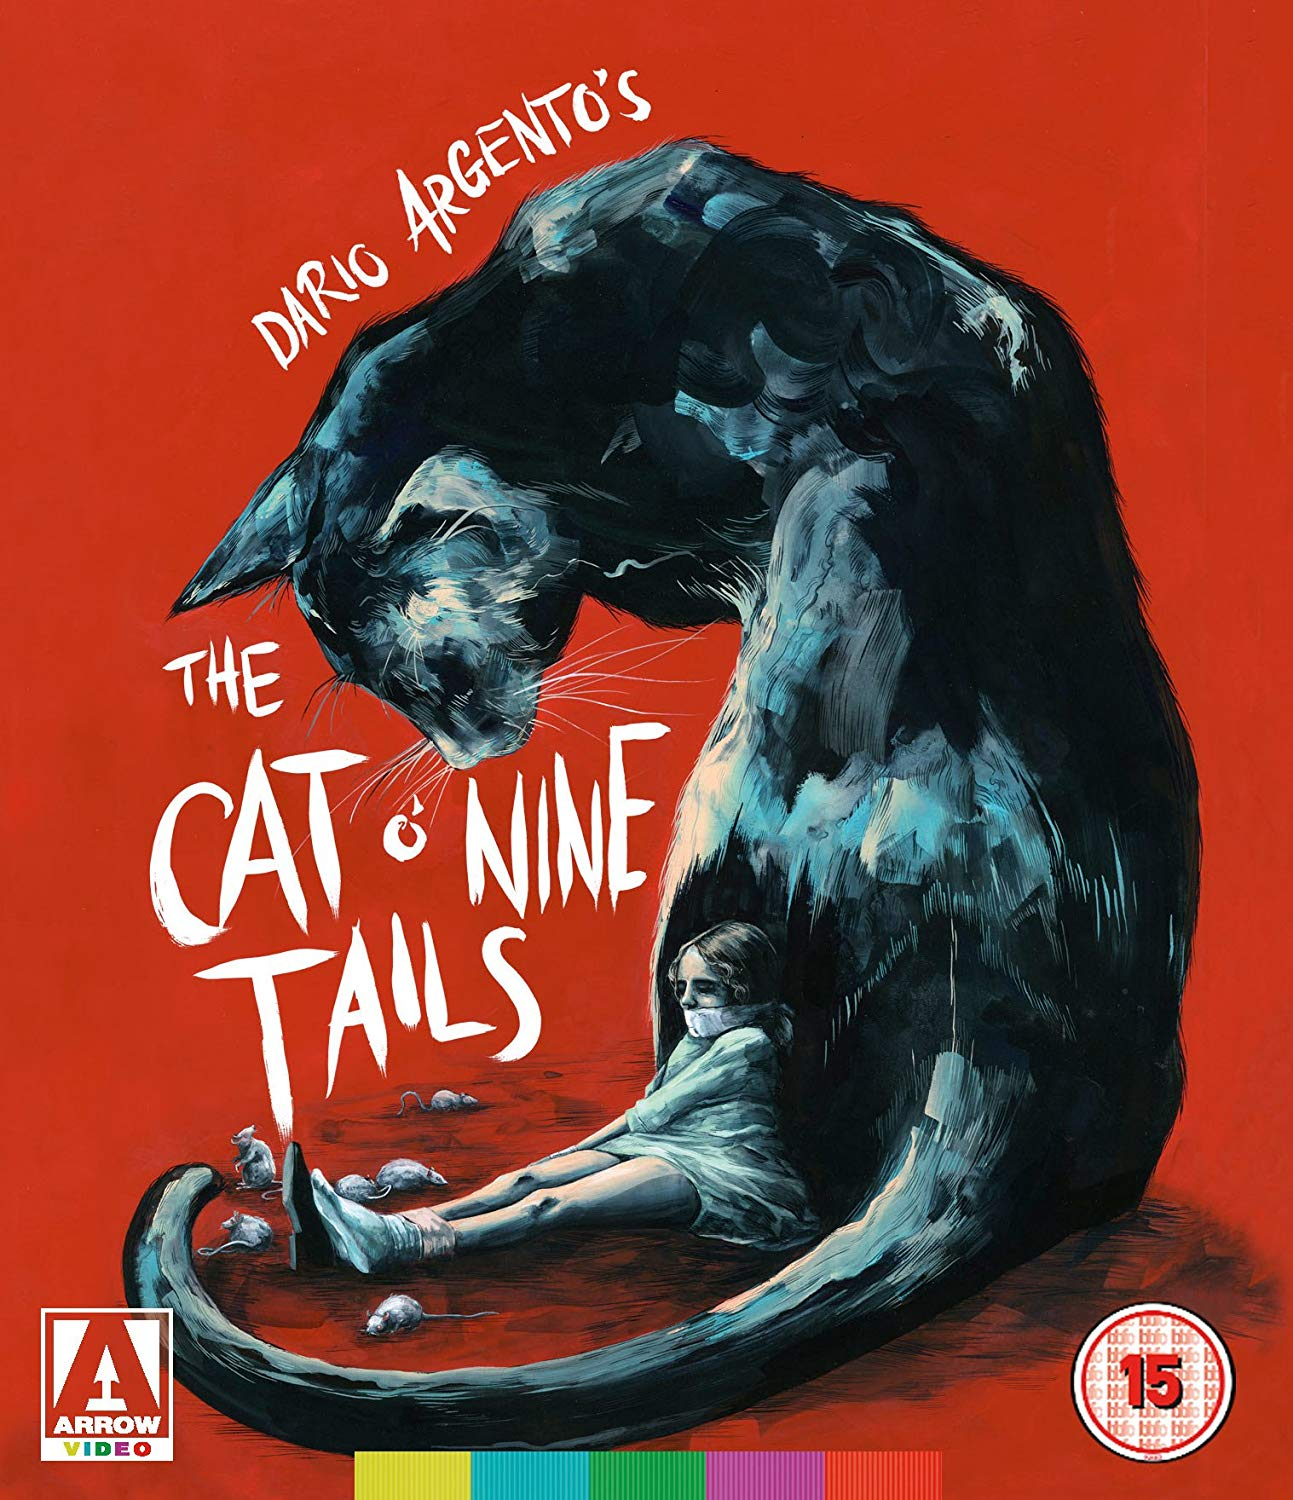 Buy The Cat O' Nine Tails (Limited Edition Dual Format Edition)